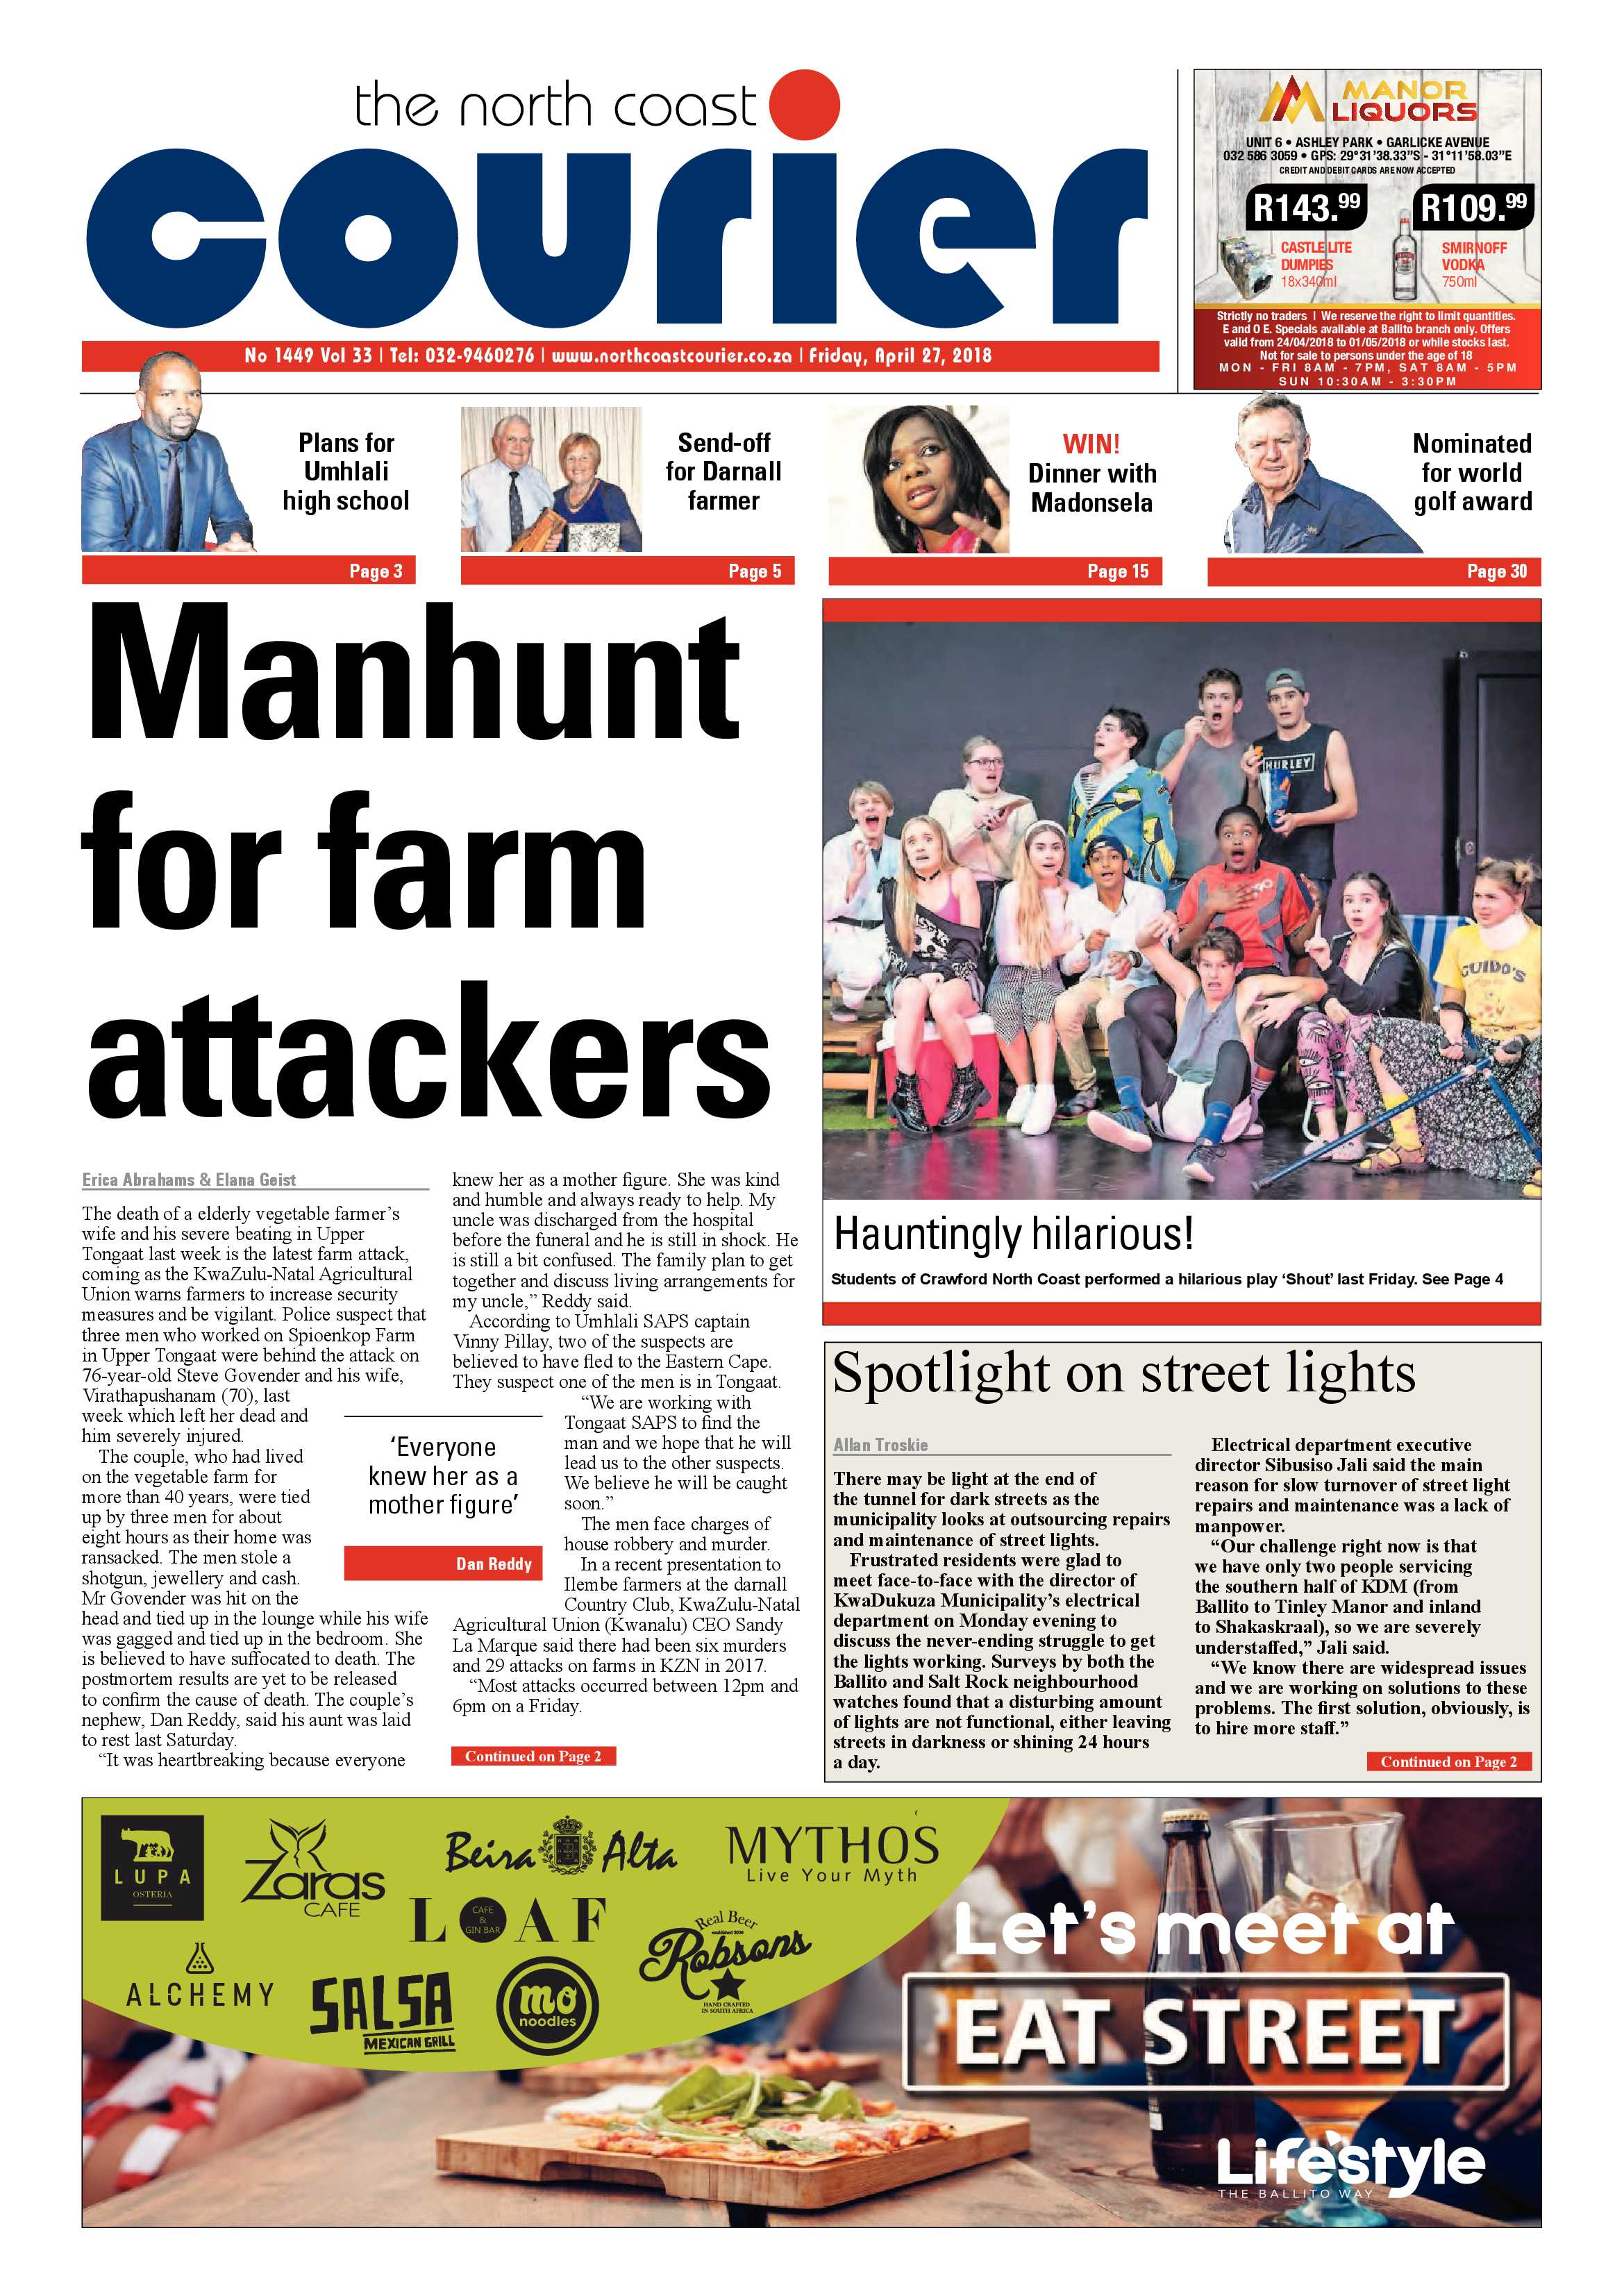 The North Coast Courier – 27 April 2018